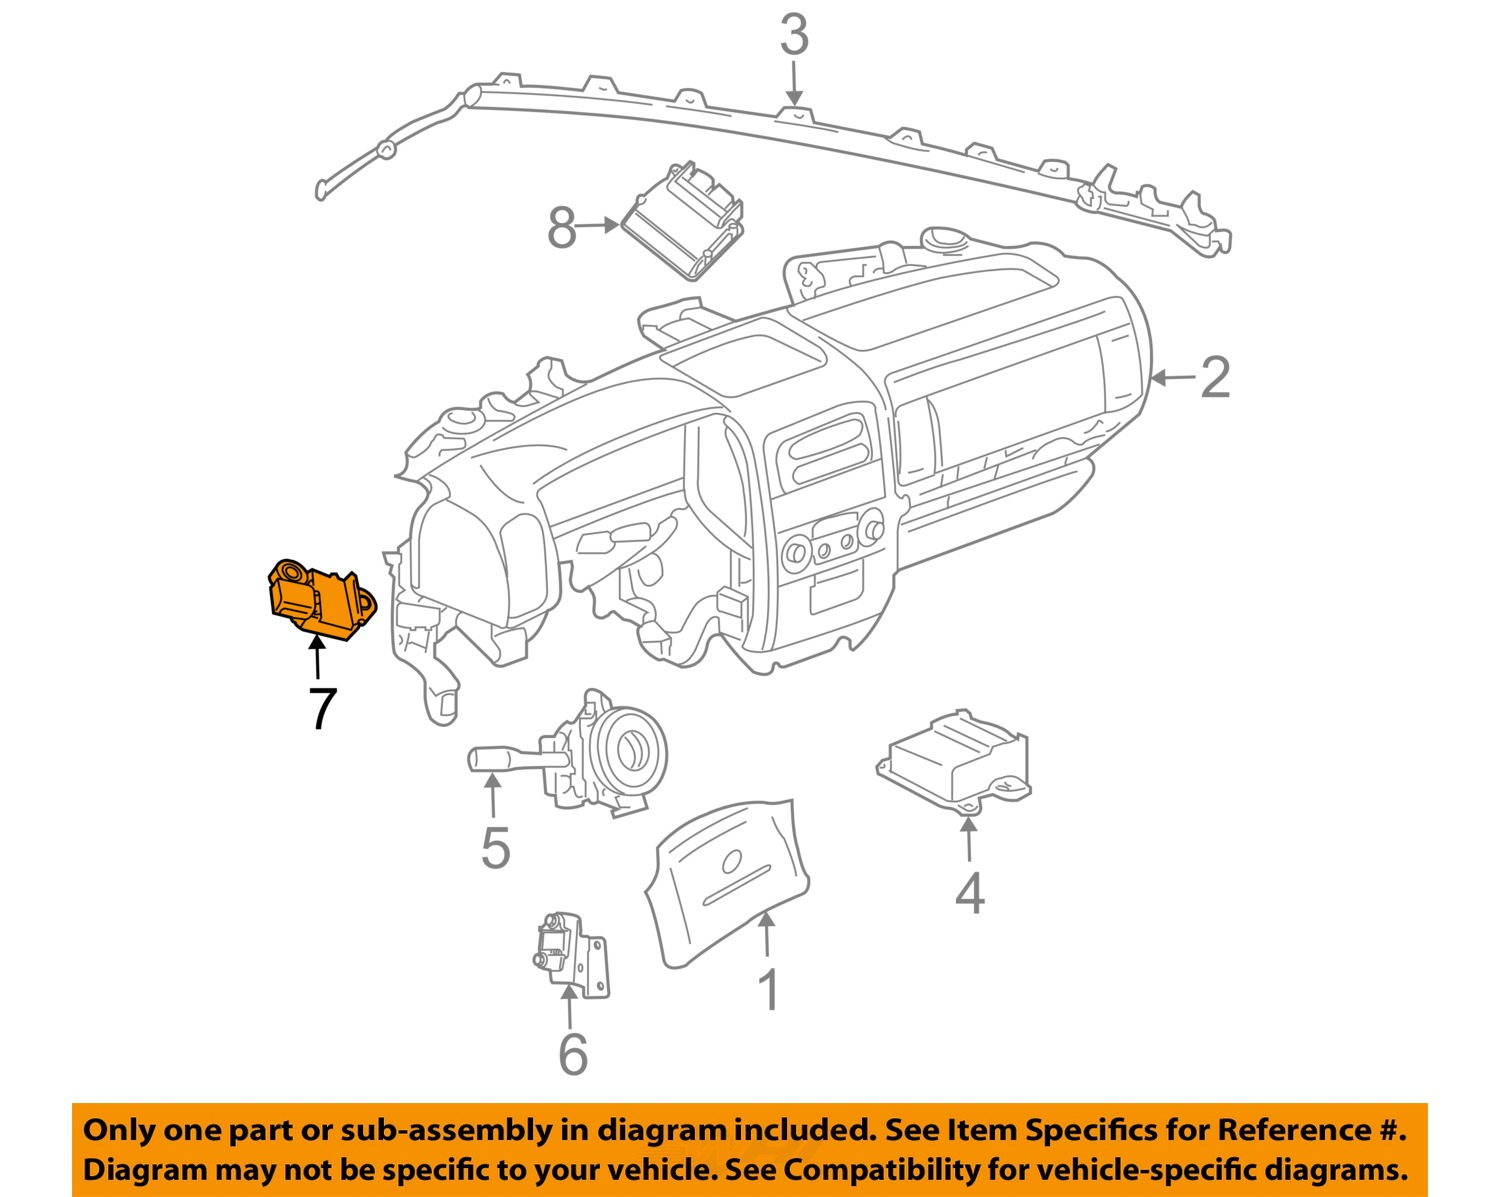 Jeep Chrysler Oem Supplemental Restraint System Diagnostic Module 1950 Willys Overland Wiring Diagram 7 On Only Genuine Oe Factory Original Item